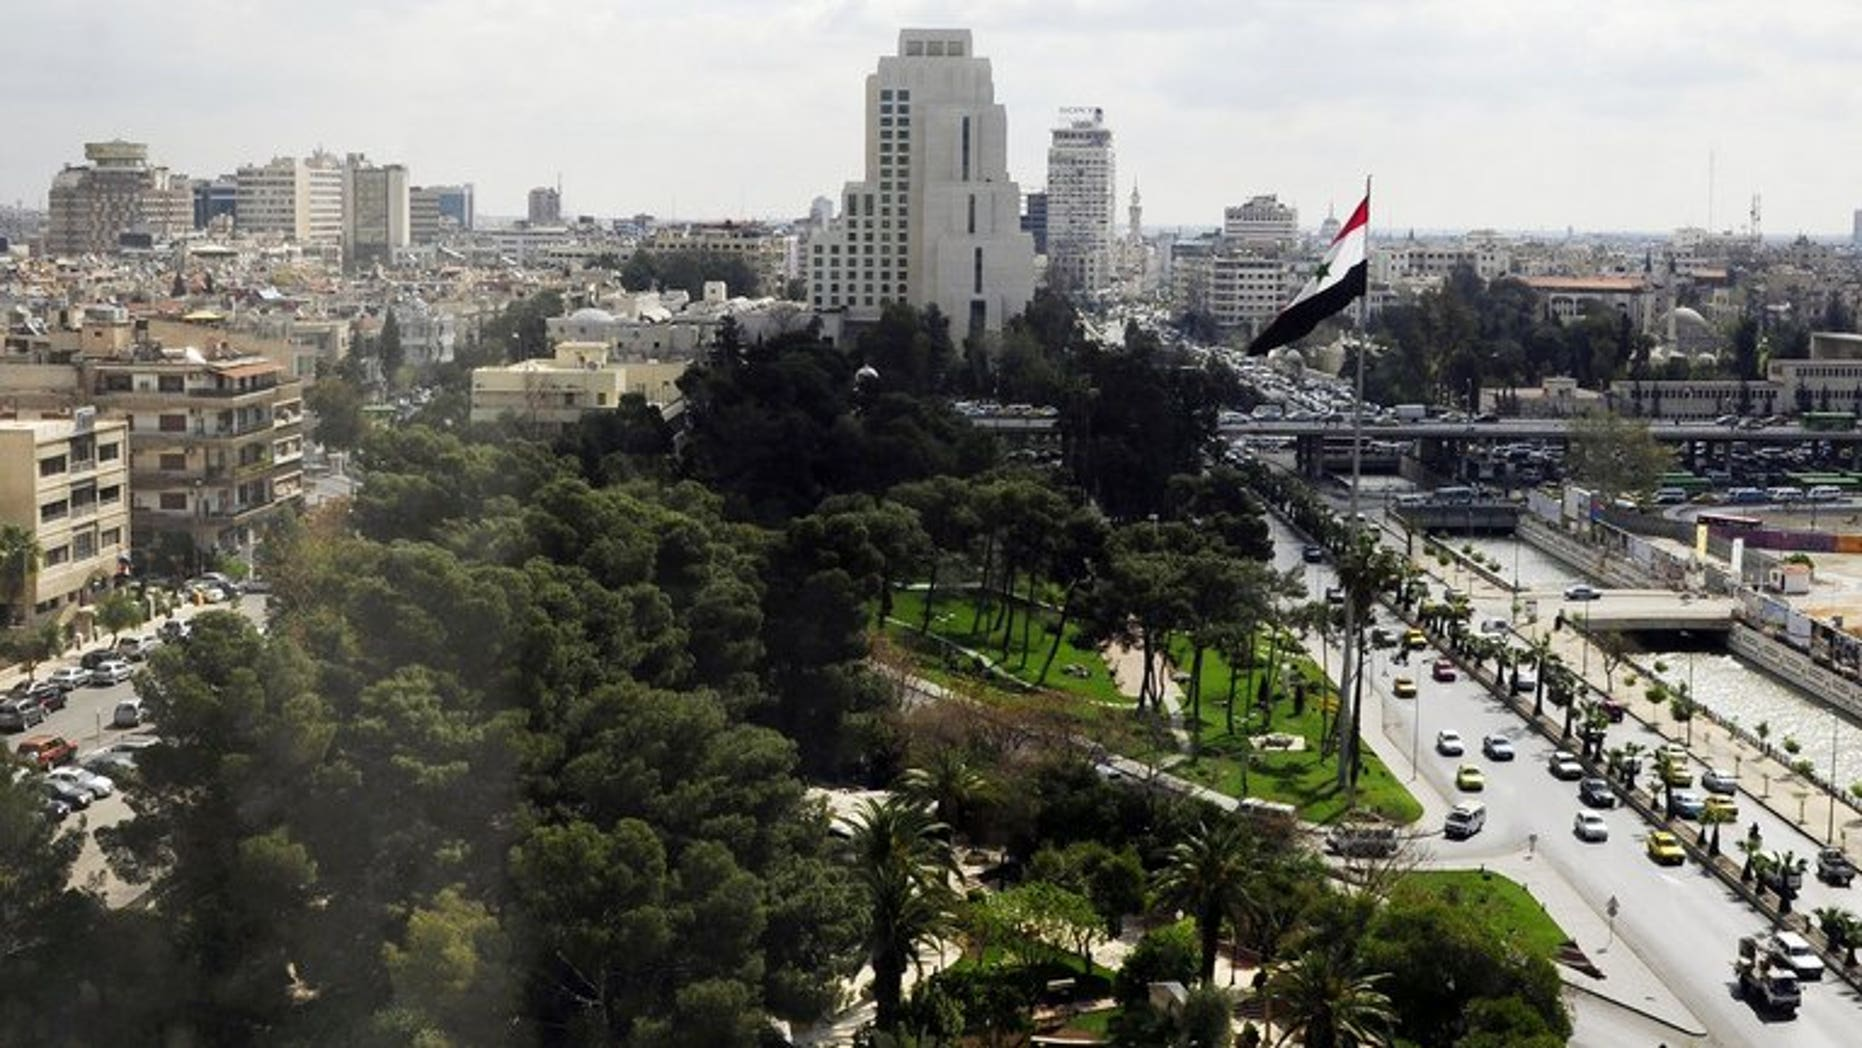 A handout released by the Syrian Arab News Agency (SANA) shows an aerial view of Damascus, on April 6, 2011. A mortar round hit the compound of the Russian embassy in Damascus, according to the Syrian Observatory for Human Rights.